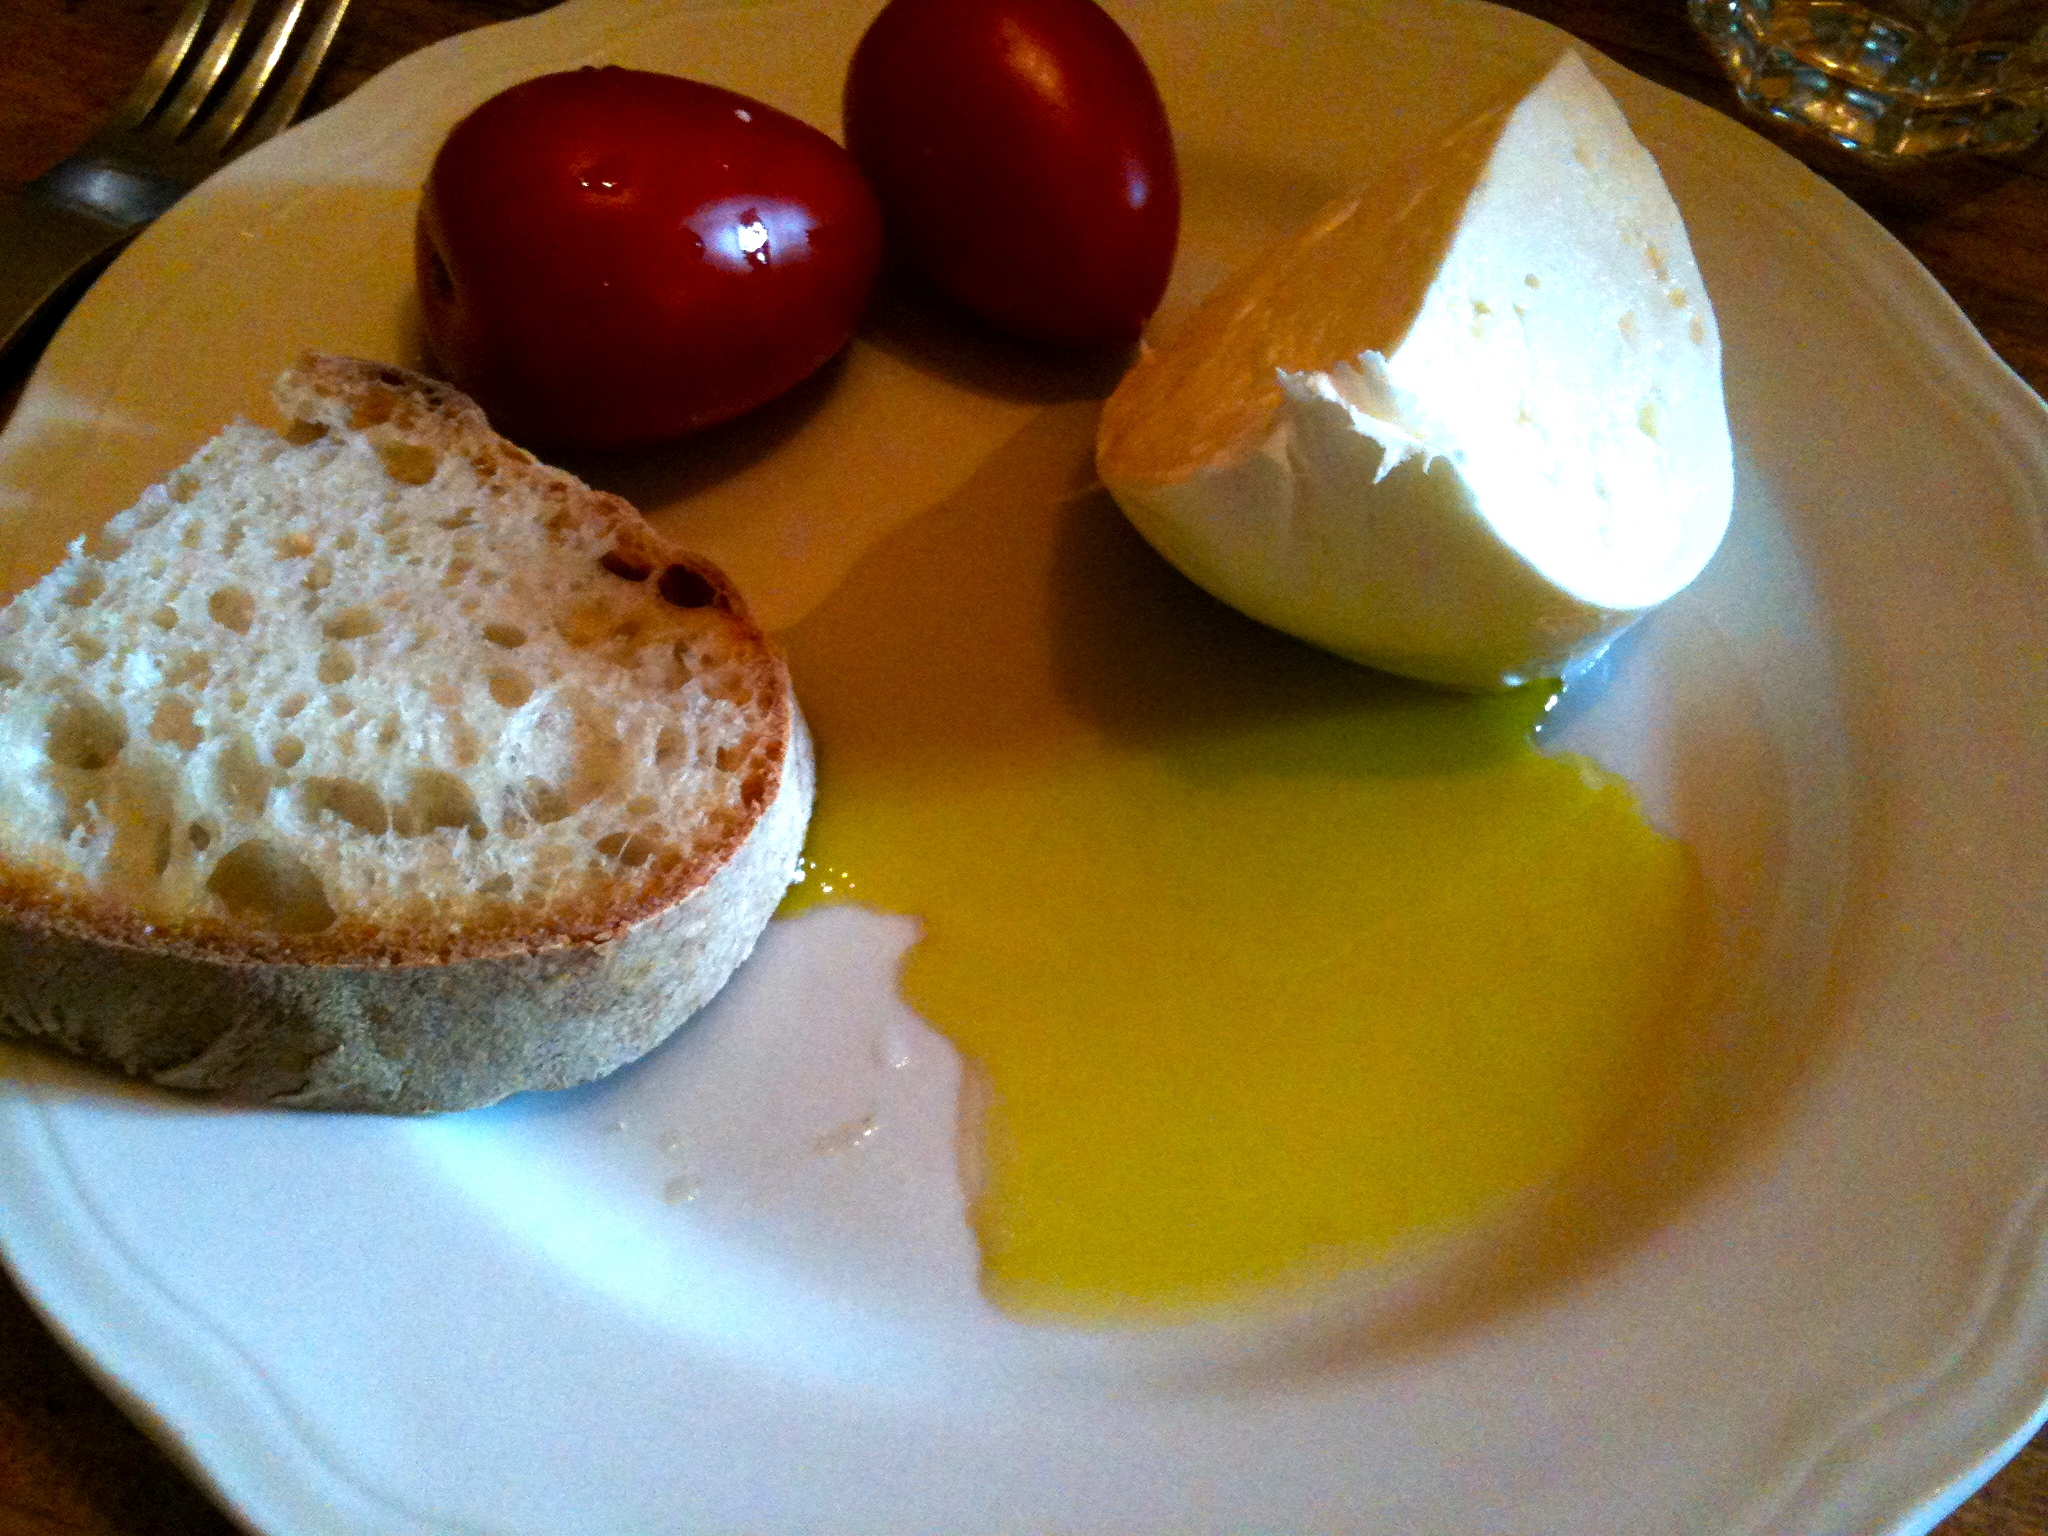 Aforementioned buffala mozzarella and first press olive oil